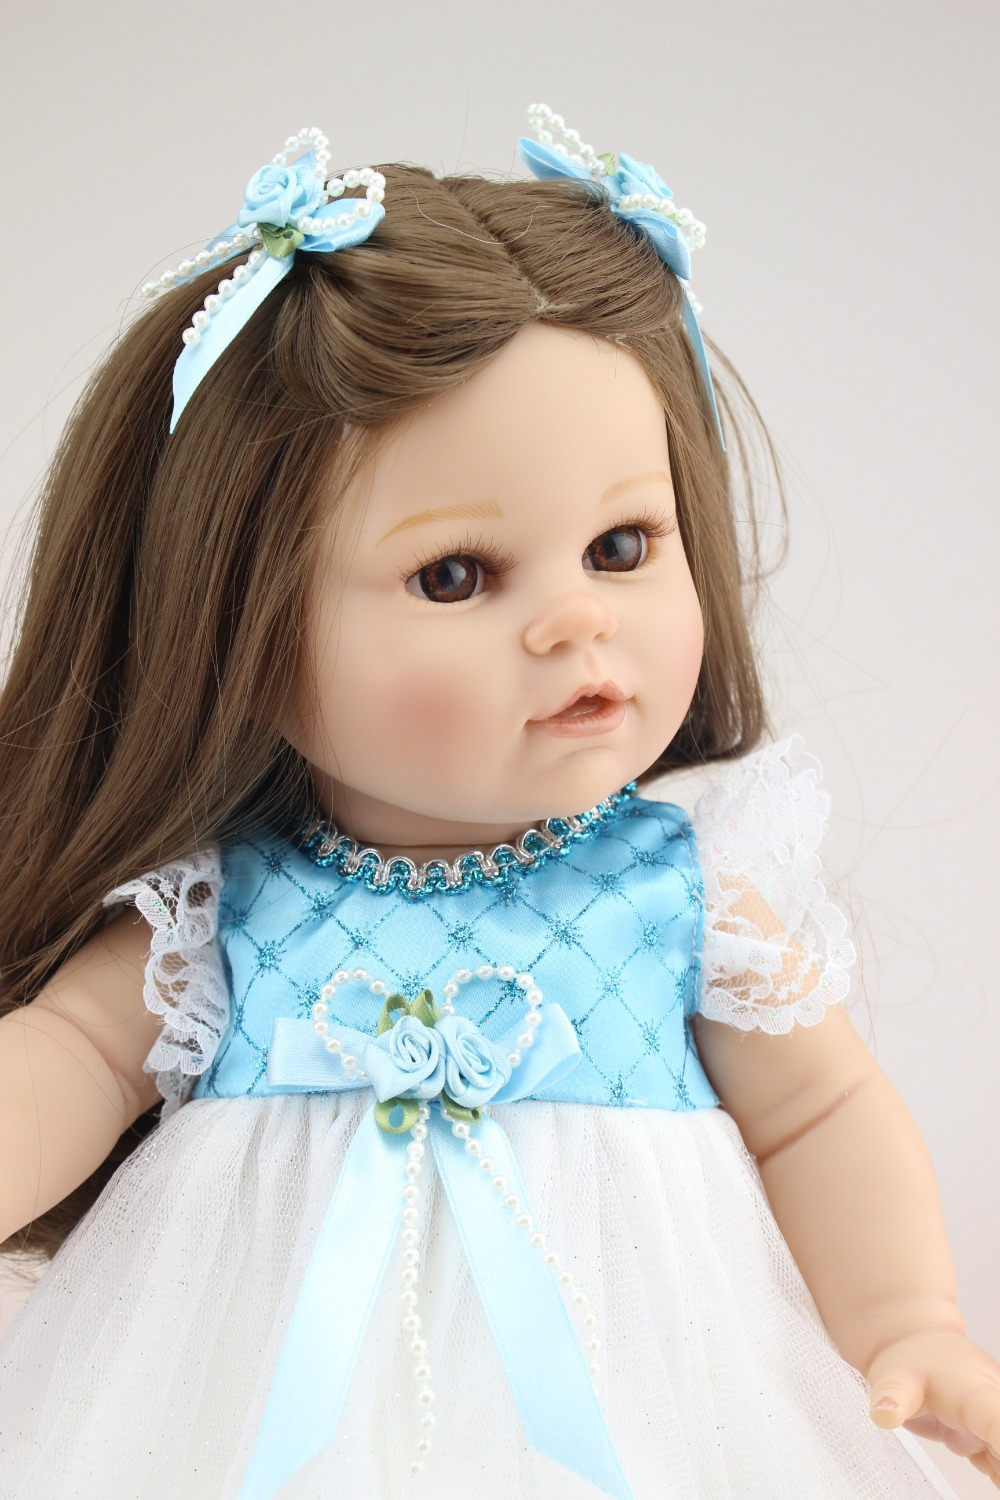 American Girl Doll 18 inches Doll Reborn Real Silicone Doll Realistic Cute Doll Handmade Full Vinyl Gift for Children doll reborn princess18 inches american girl dolls babies realistic doll cute doll handmade full vinyl gift for children